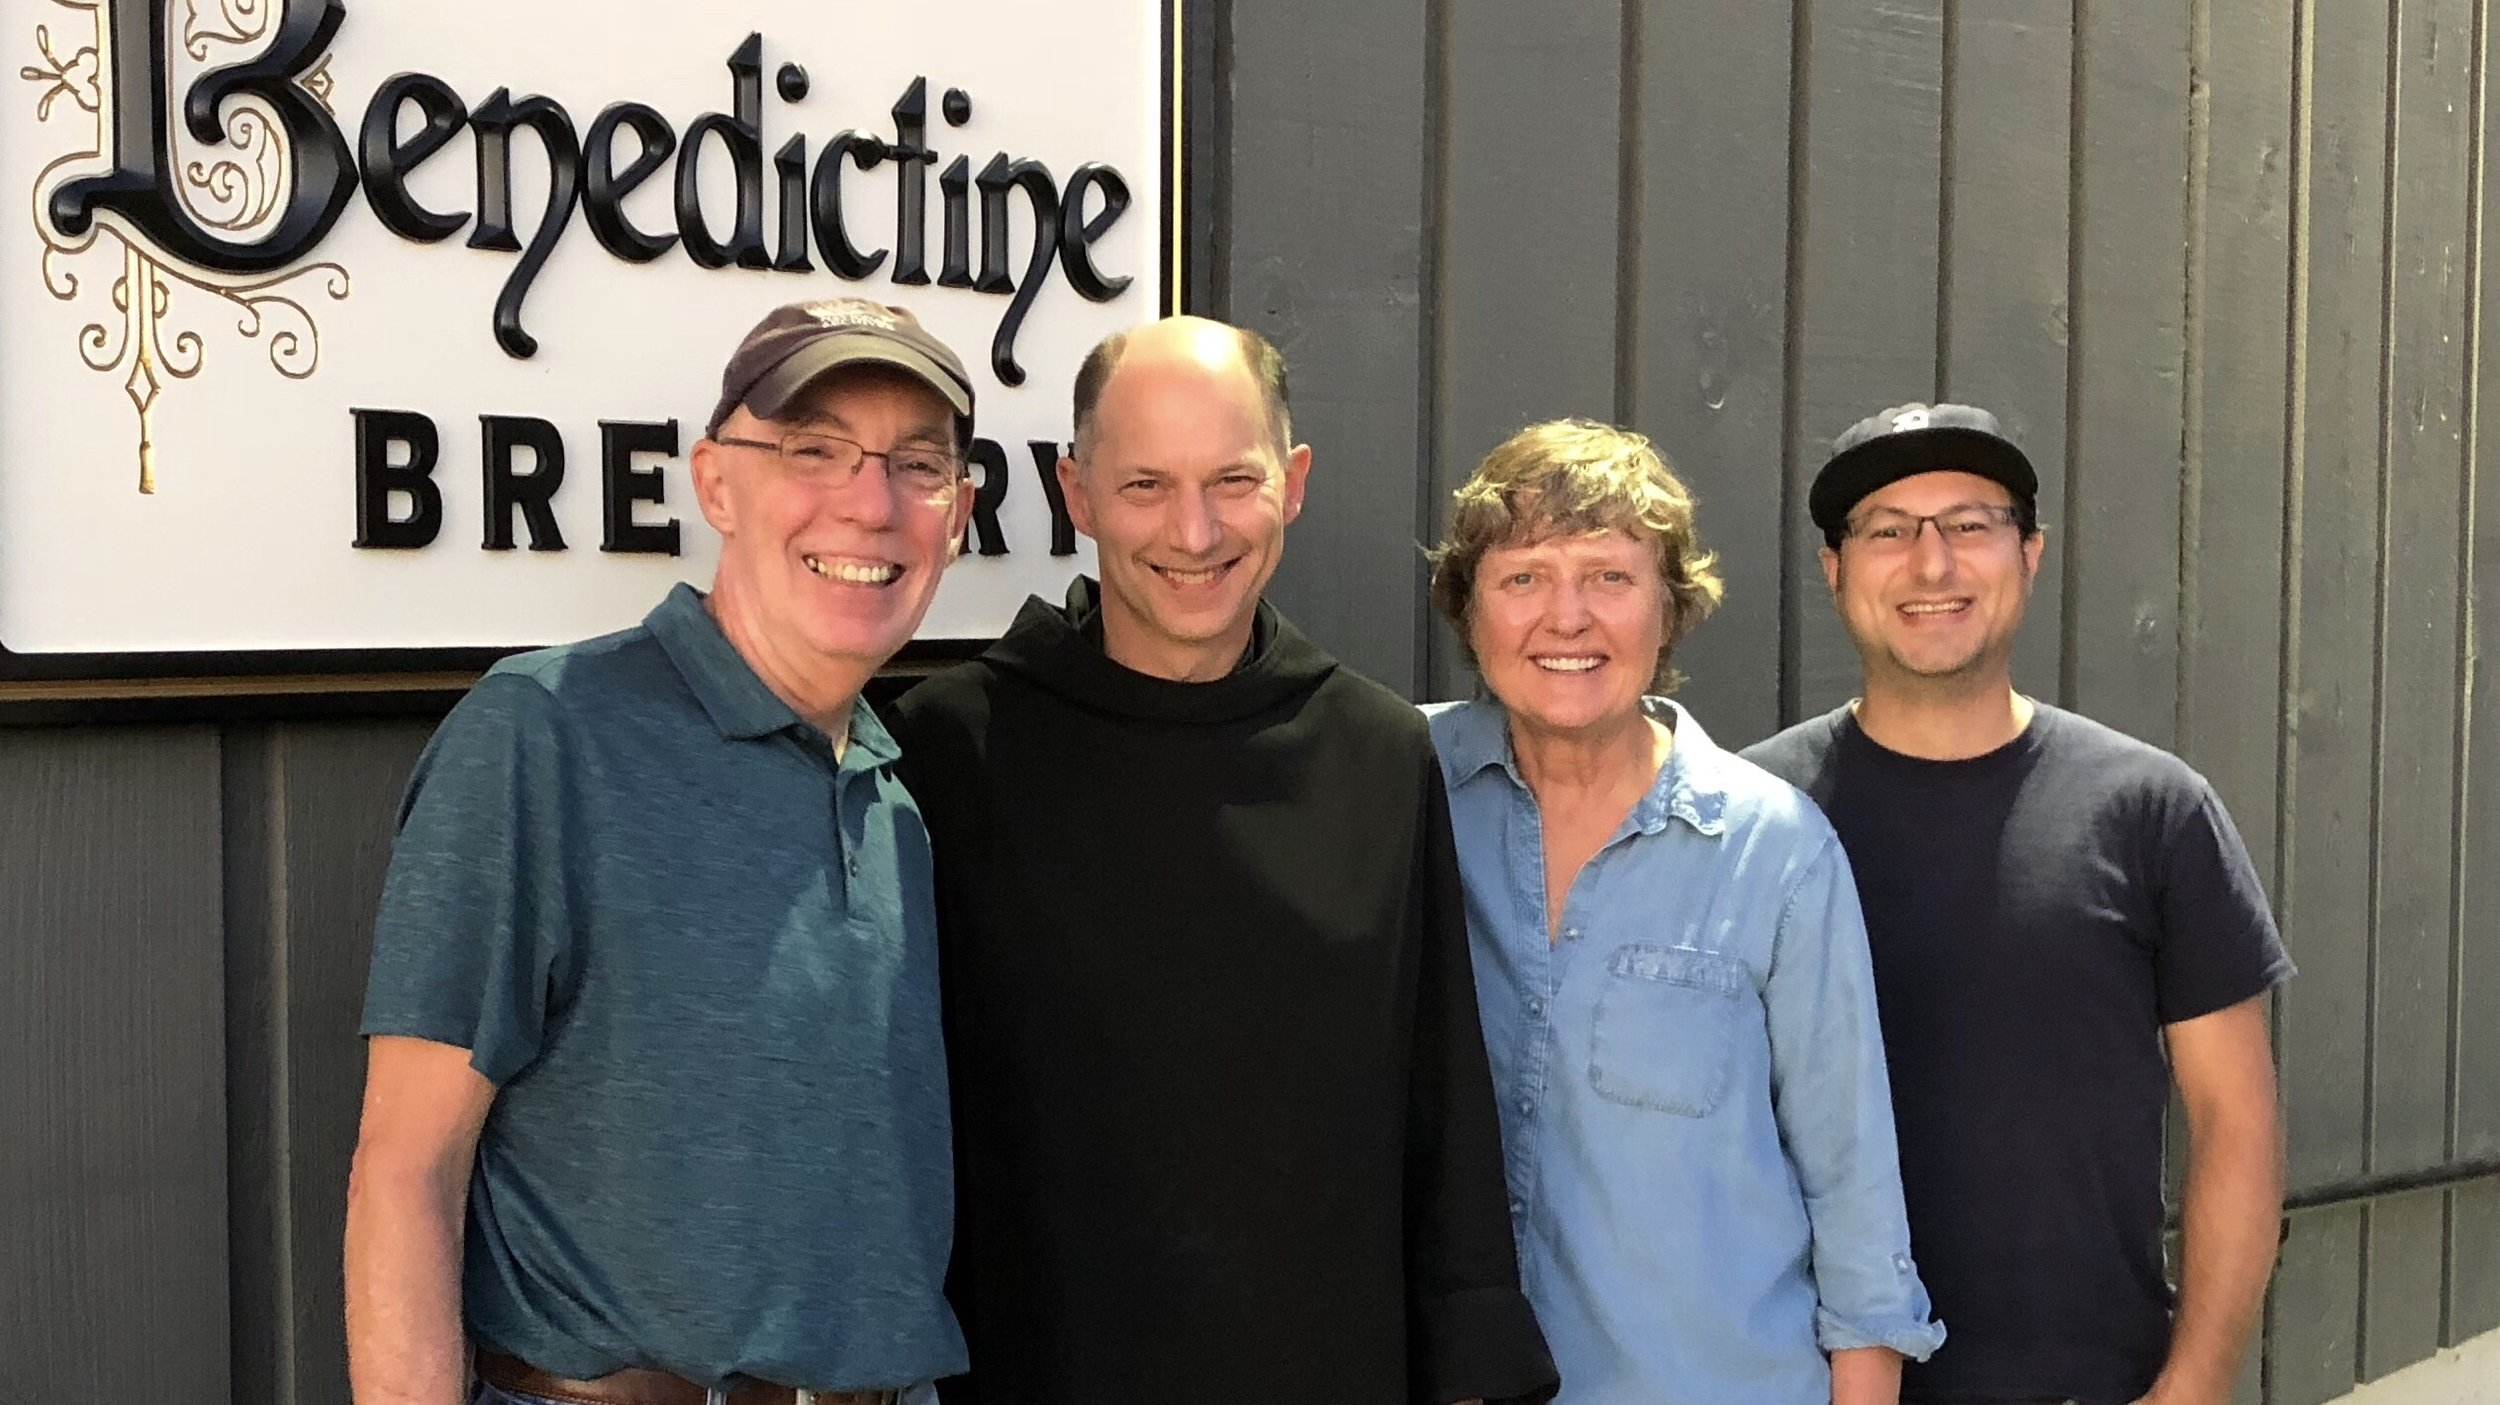 Visitkng Benedictine Brewery for the first time with (l-r) Stan Hieronymus, Father Martin, Gayle Goachie, and Alex Ganum.